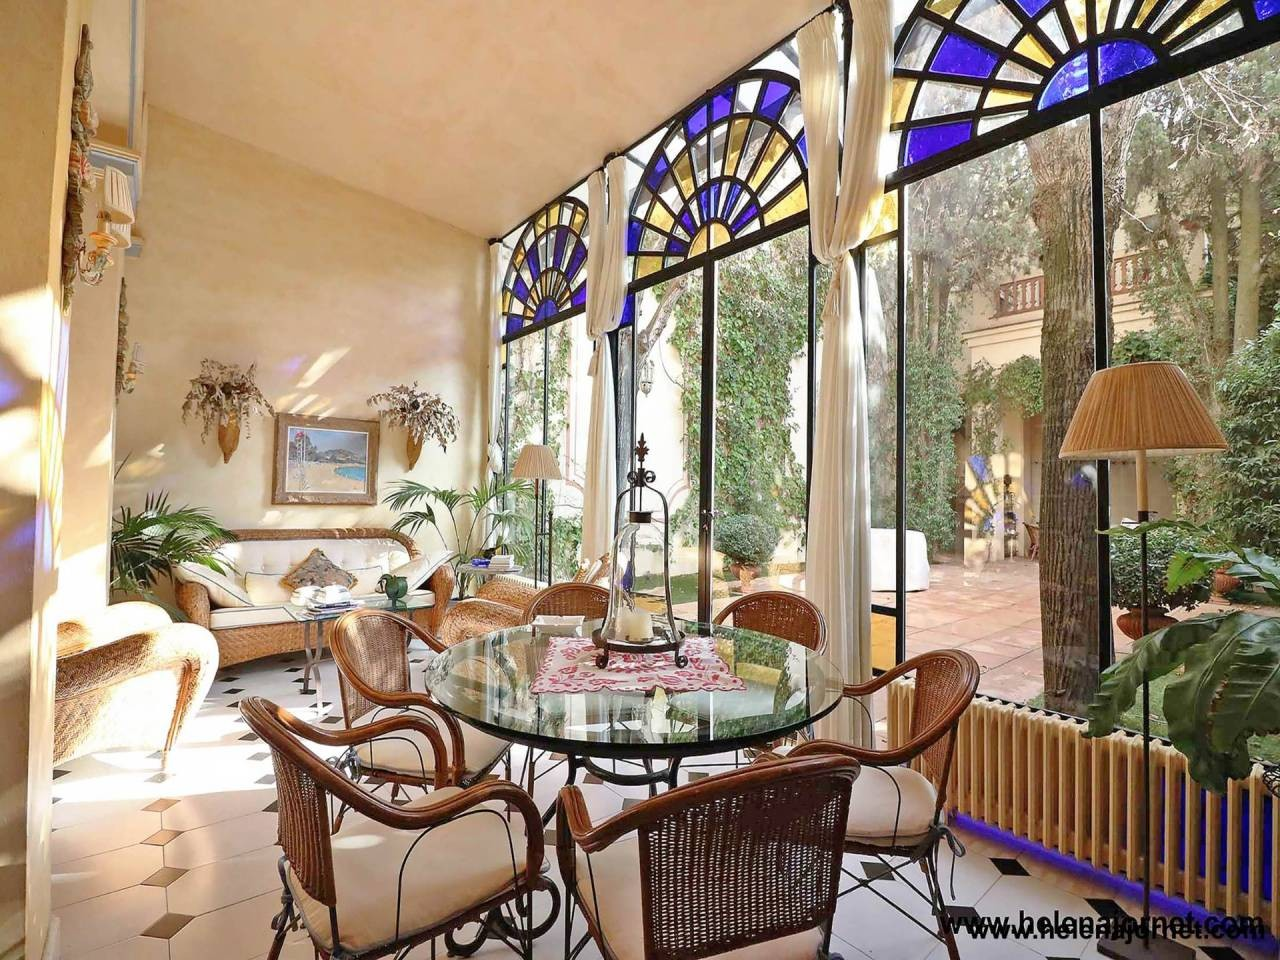 Spectacular modernist art Nouveau style house in town centre - 004066